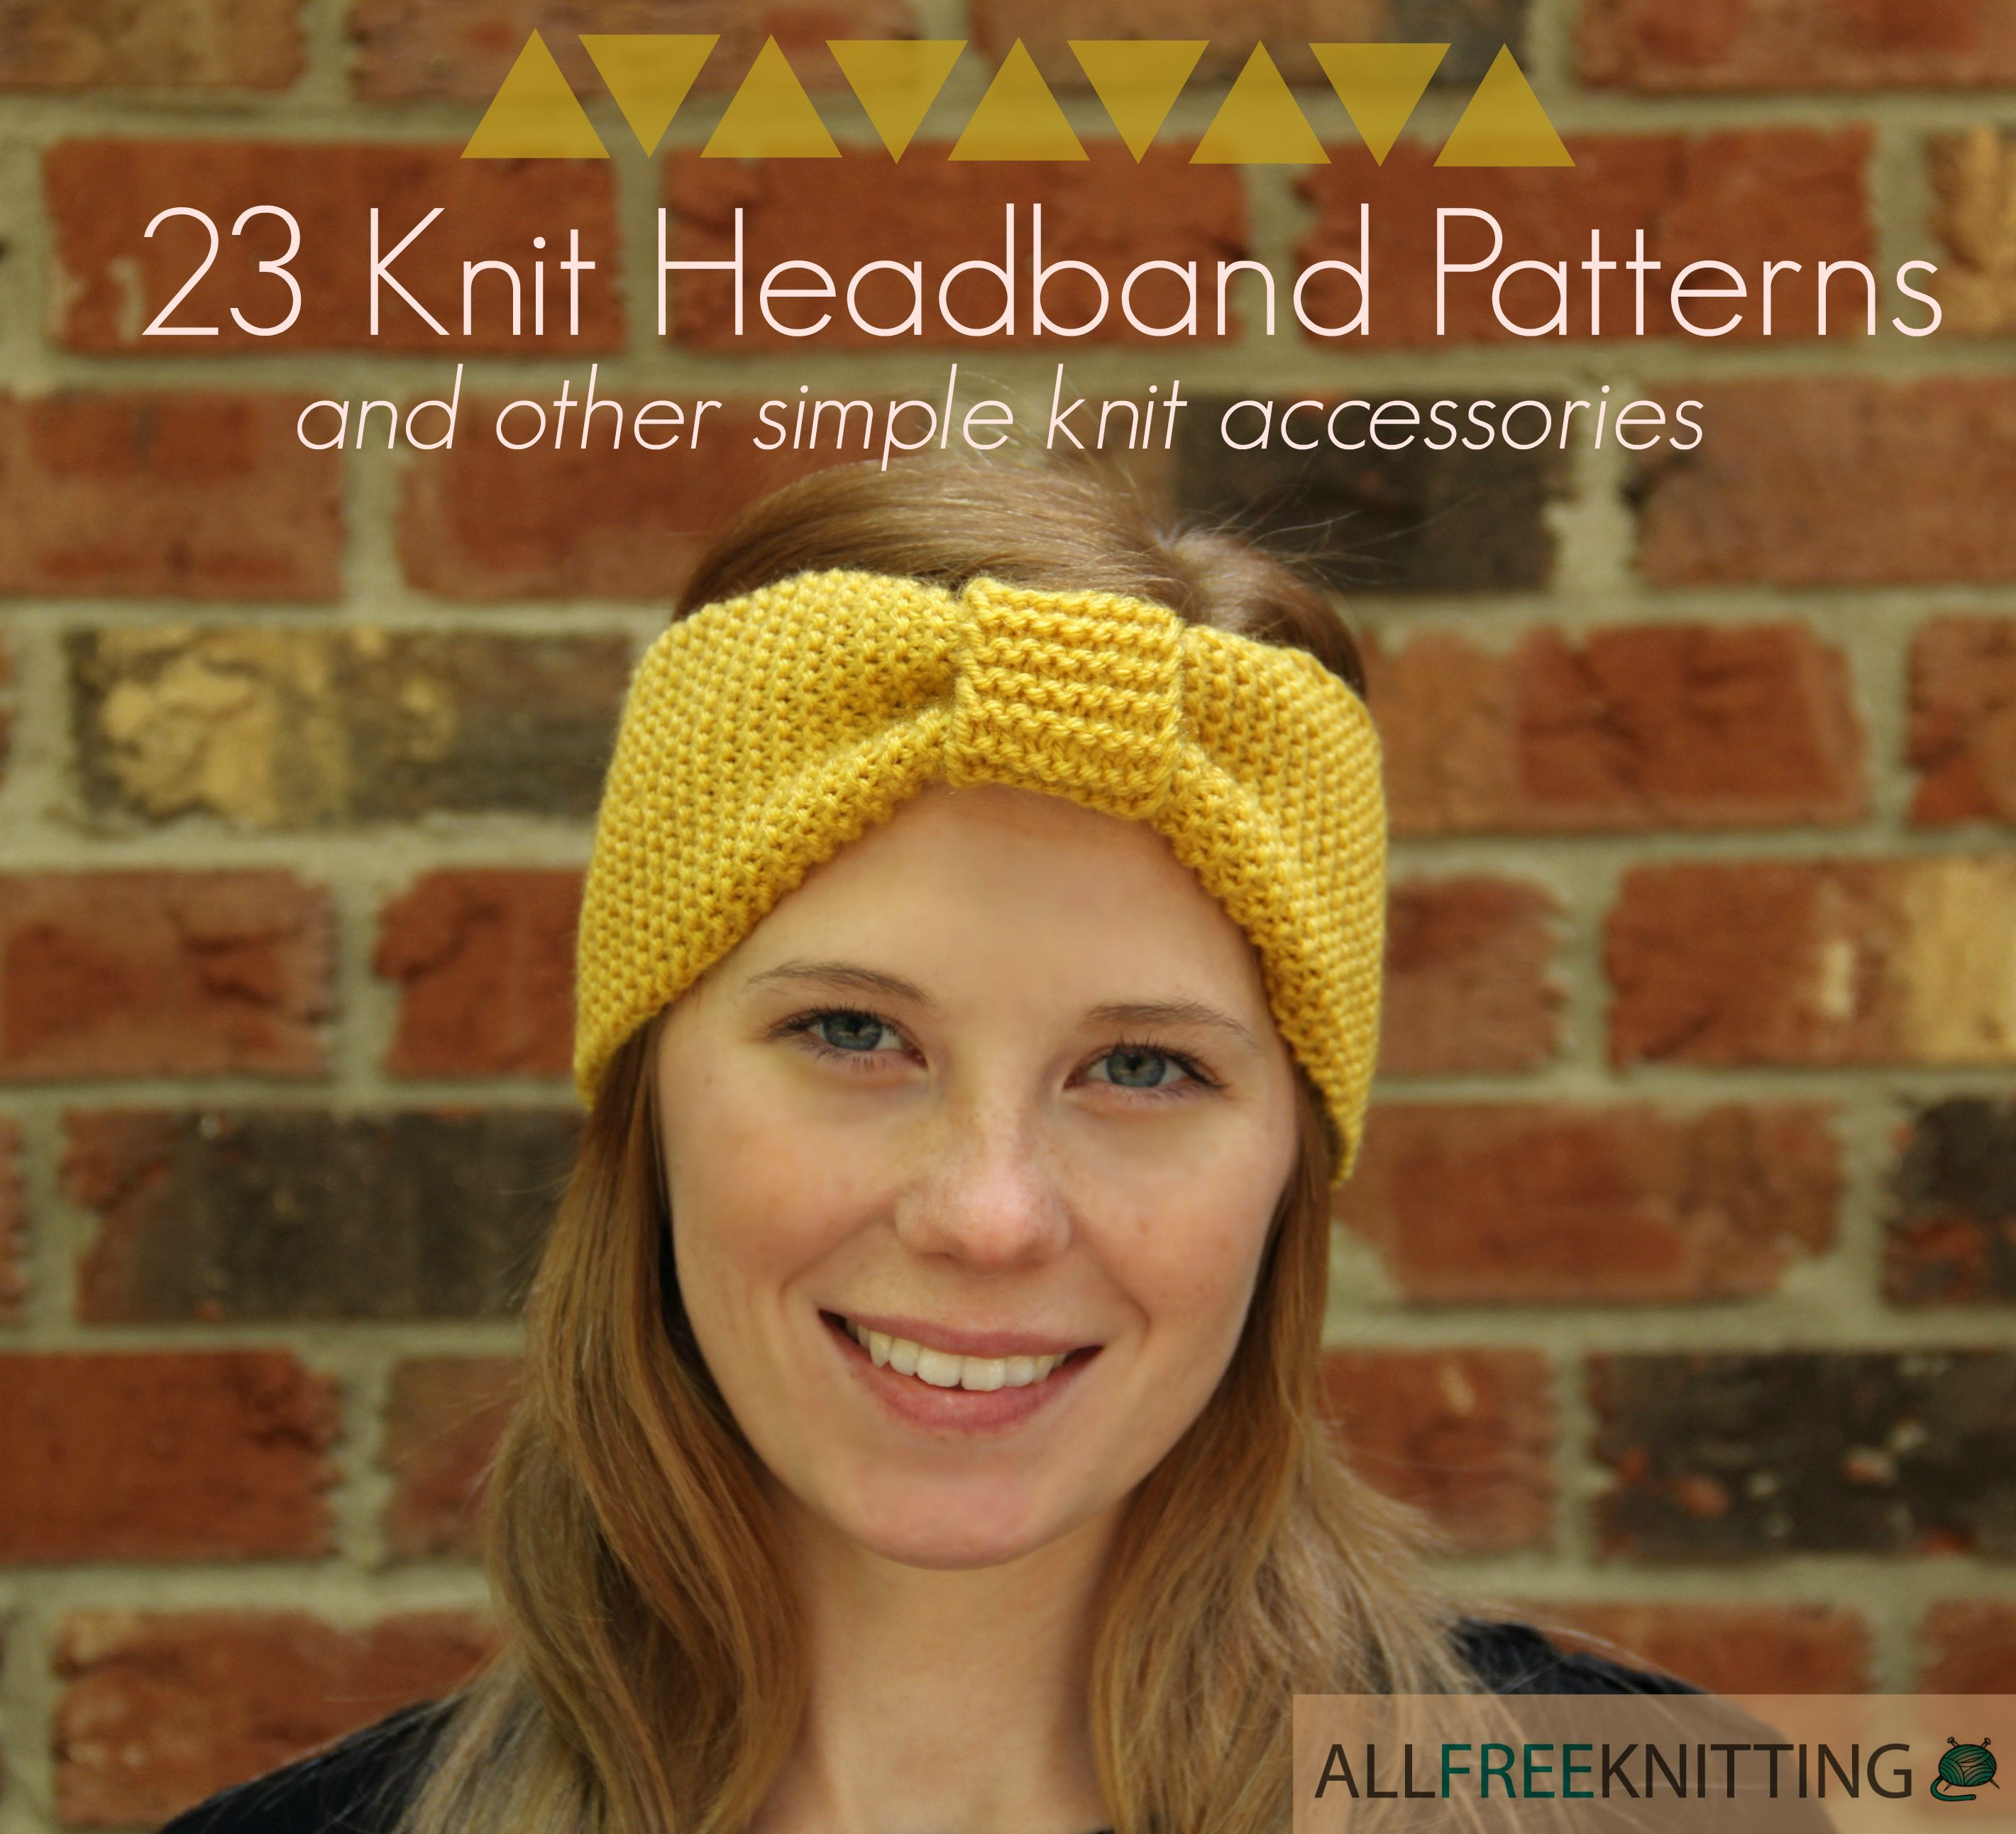 25 knit headband patterns and other simple knit accessories knit this cheerful garter stitch knit headband pattern is sure to brighten the gloomiest of moods theres no way to hide a smile while wearing the goldenrod bankloansurffo Images